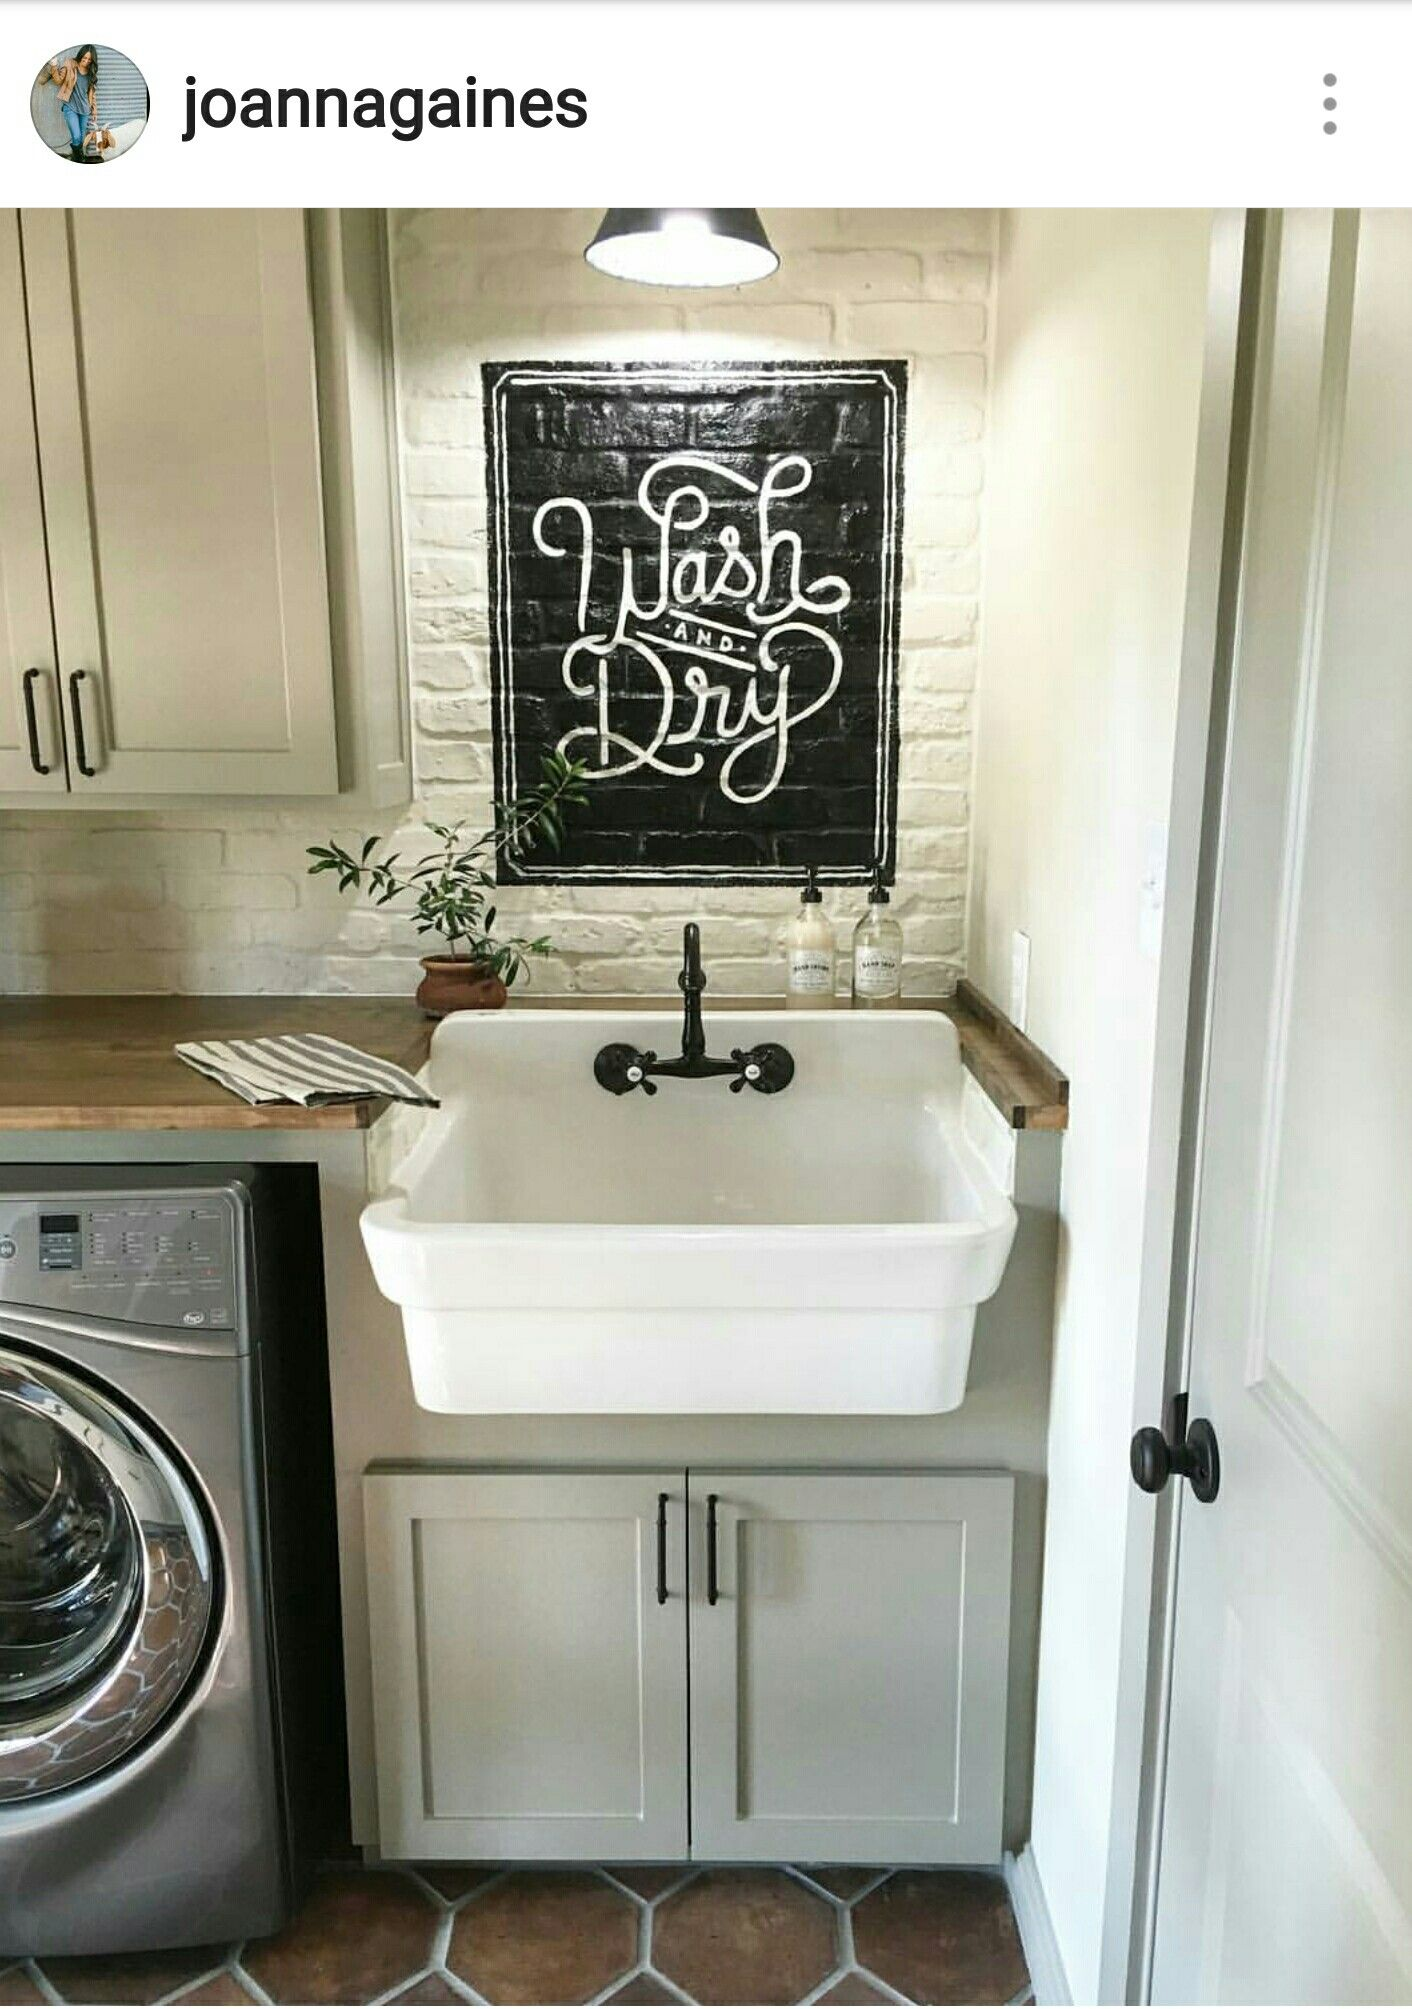 Laundry room by joanna gaines from fixer upper on hgtv for Joanna gaines bathroom designs